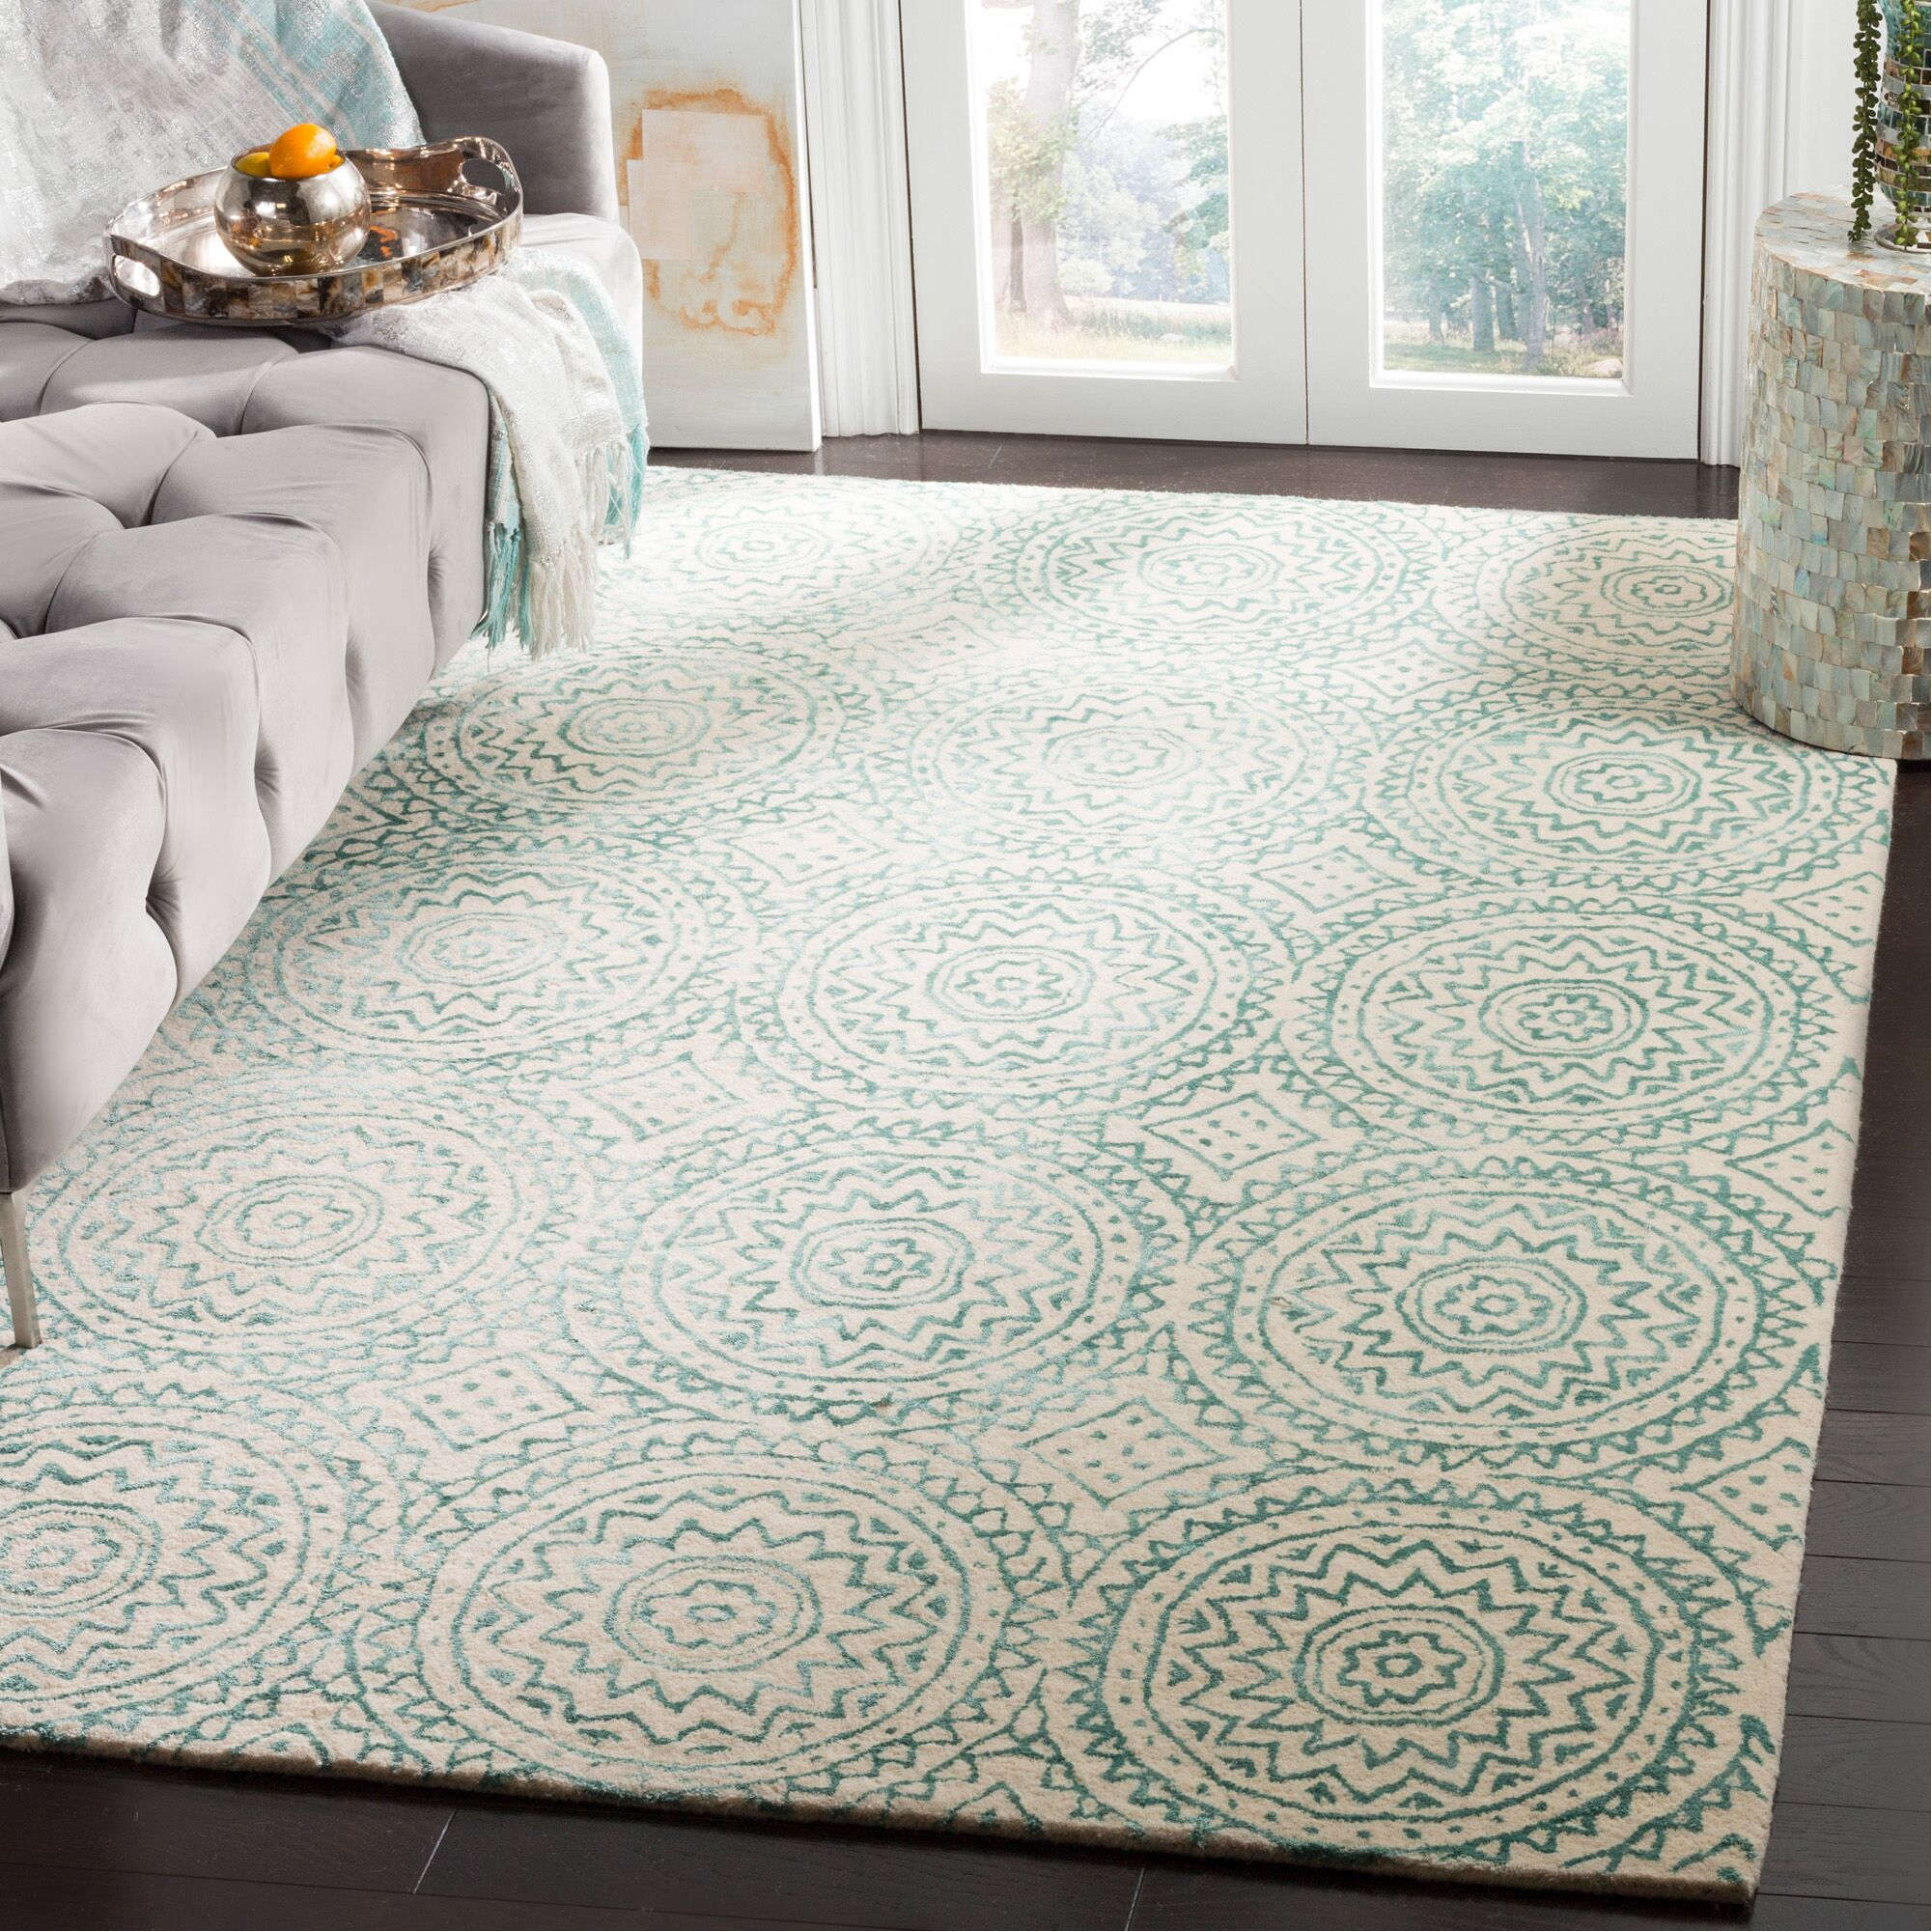 Rudra Hand-Tufted Beige/Green Area Rug Rug Size: Rectangle 5' x 8'